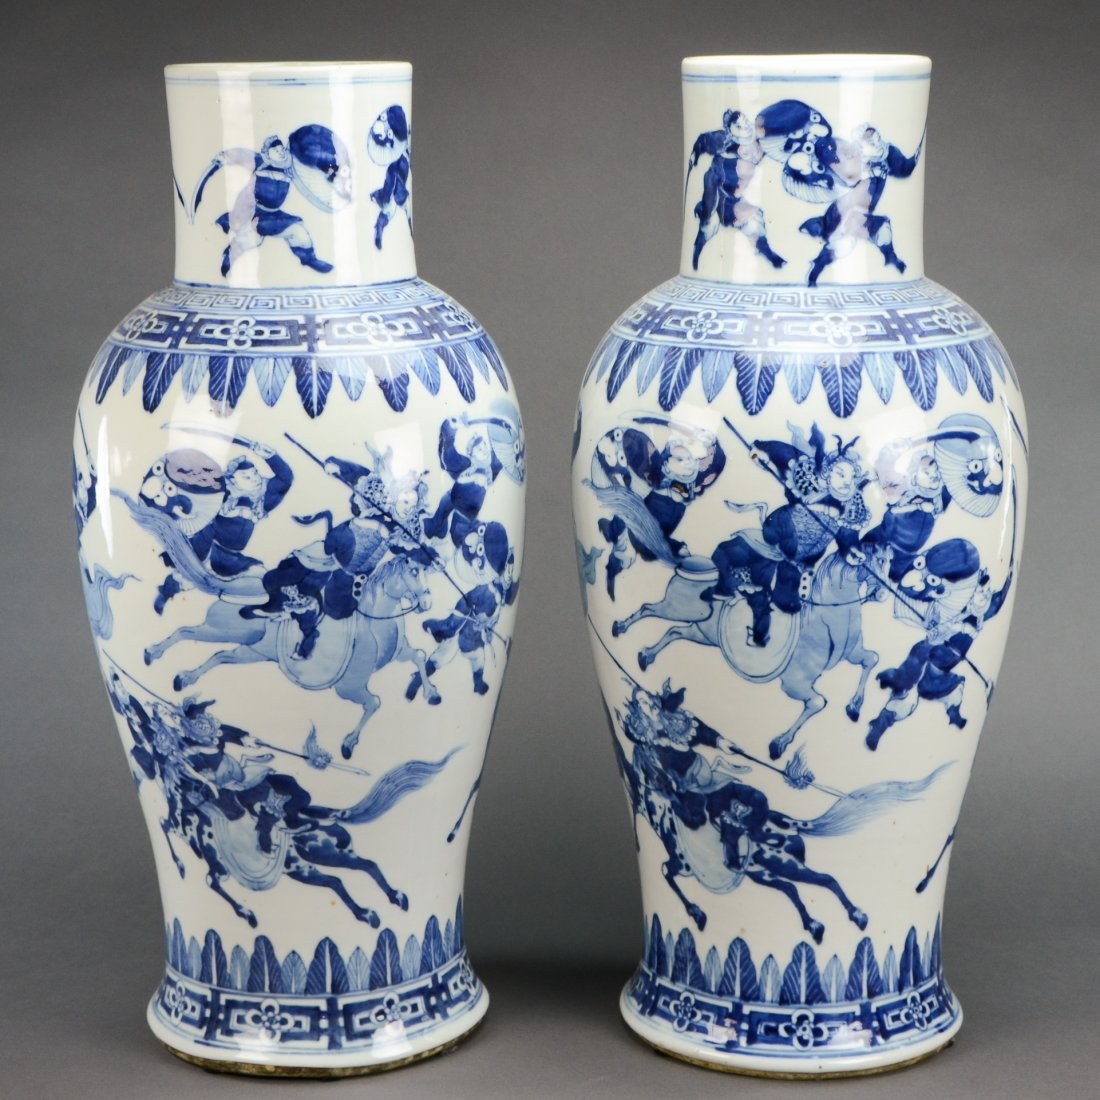 19th C. Pair Of Large Blue and White Porcelain Vases